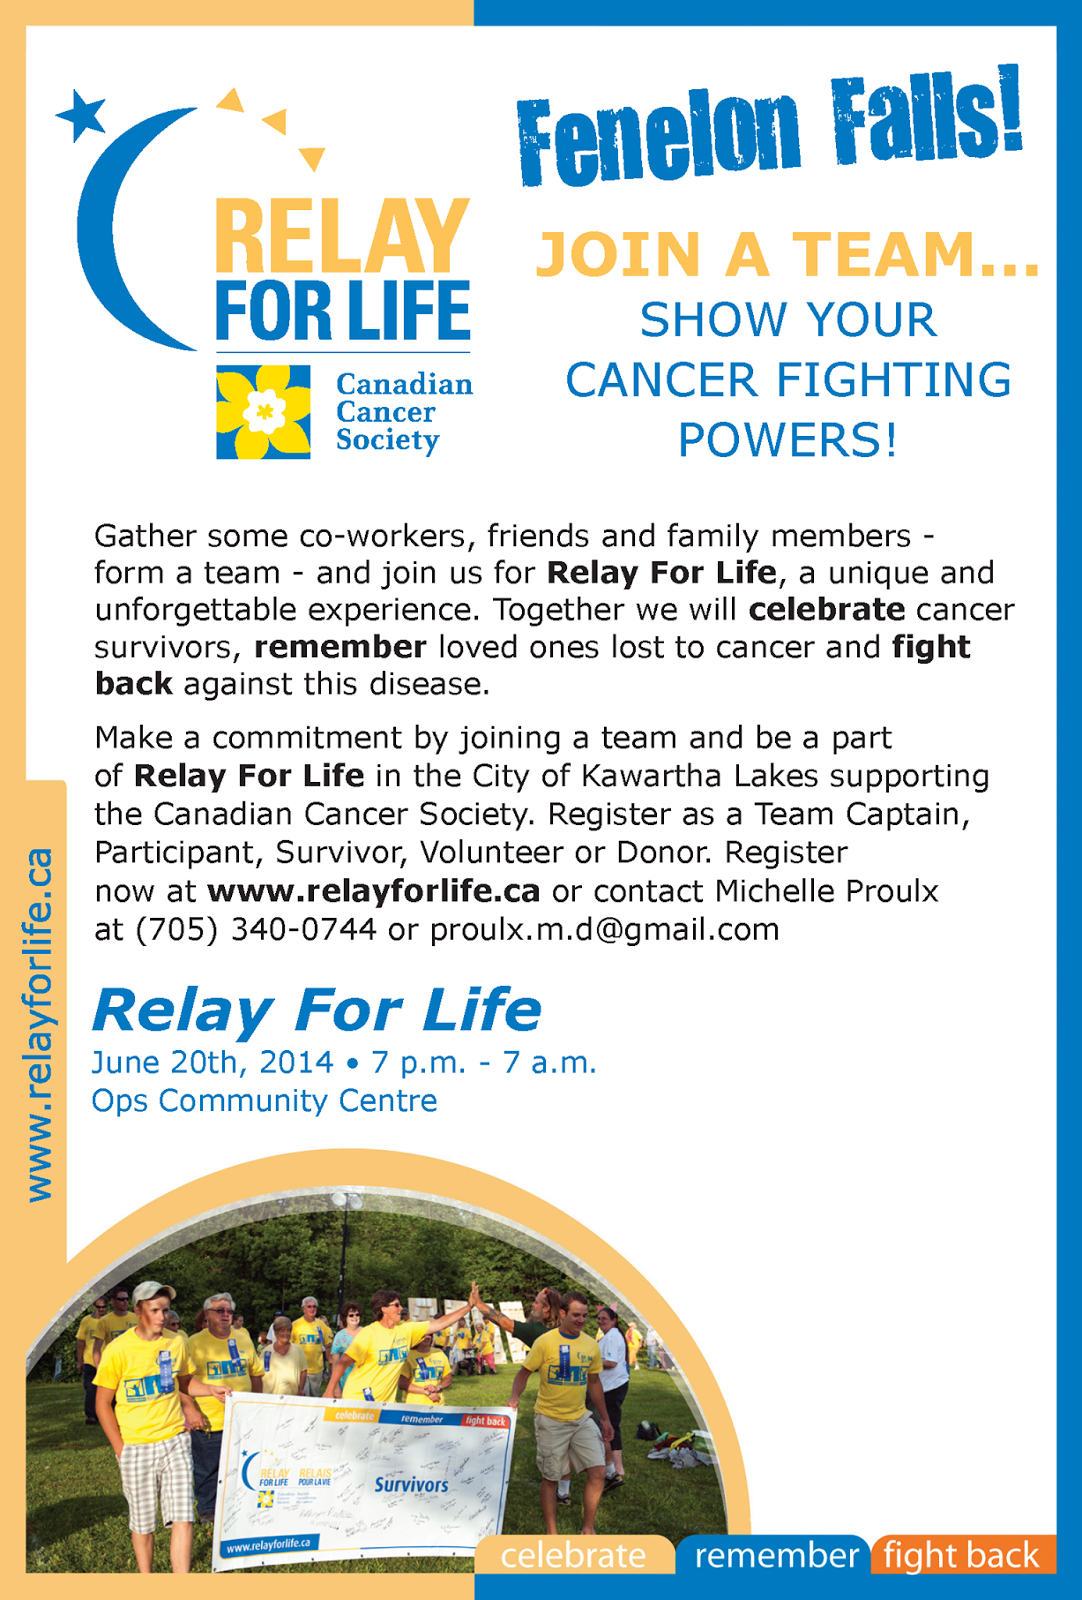 image Relay for Life Fenelon Falls Poster with contact information